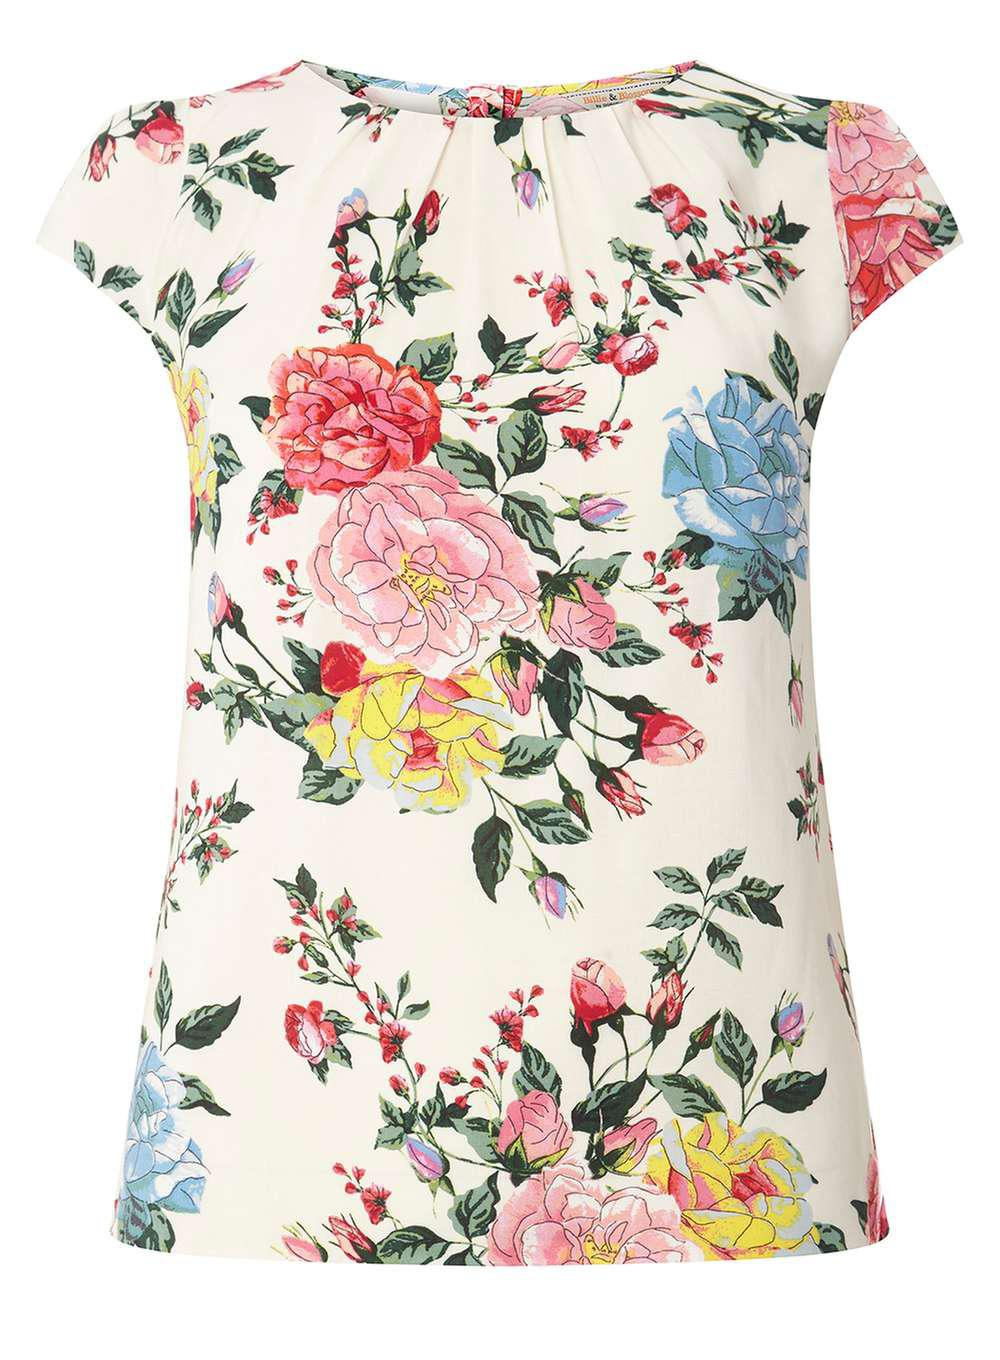 Clearance Discounts Cheap Professional Dorothy Perkins Womens **Billie & Blossom Navy Floral Print Shell Top- Huge Surprise Cheap Online Cheap Sale 2018 4iCetnAWh7